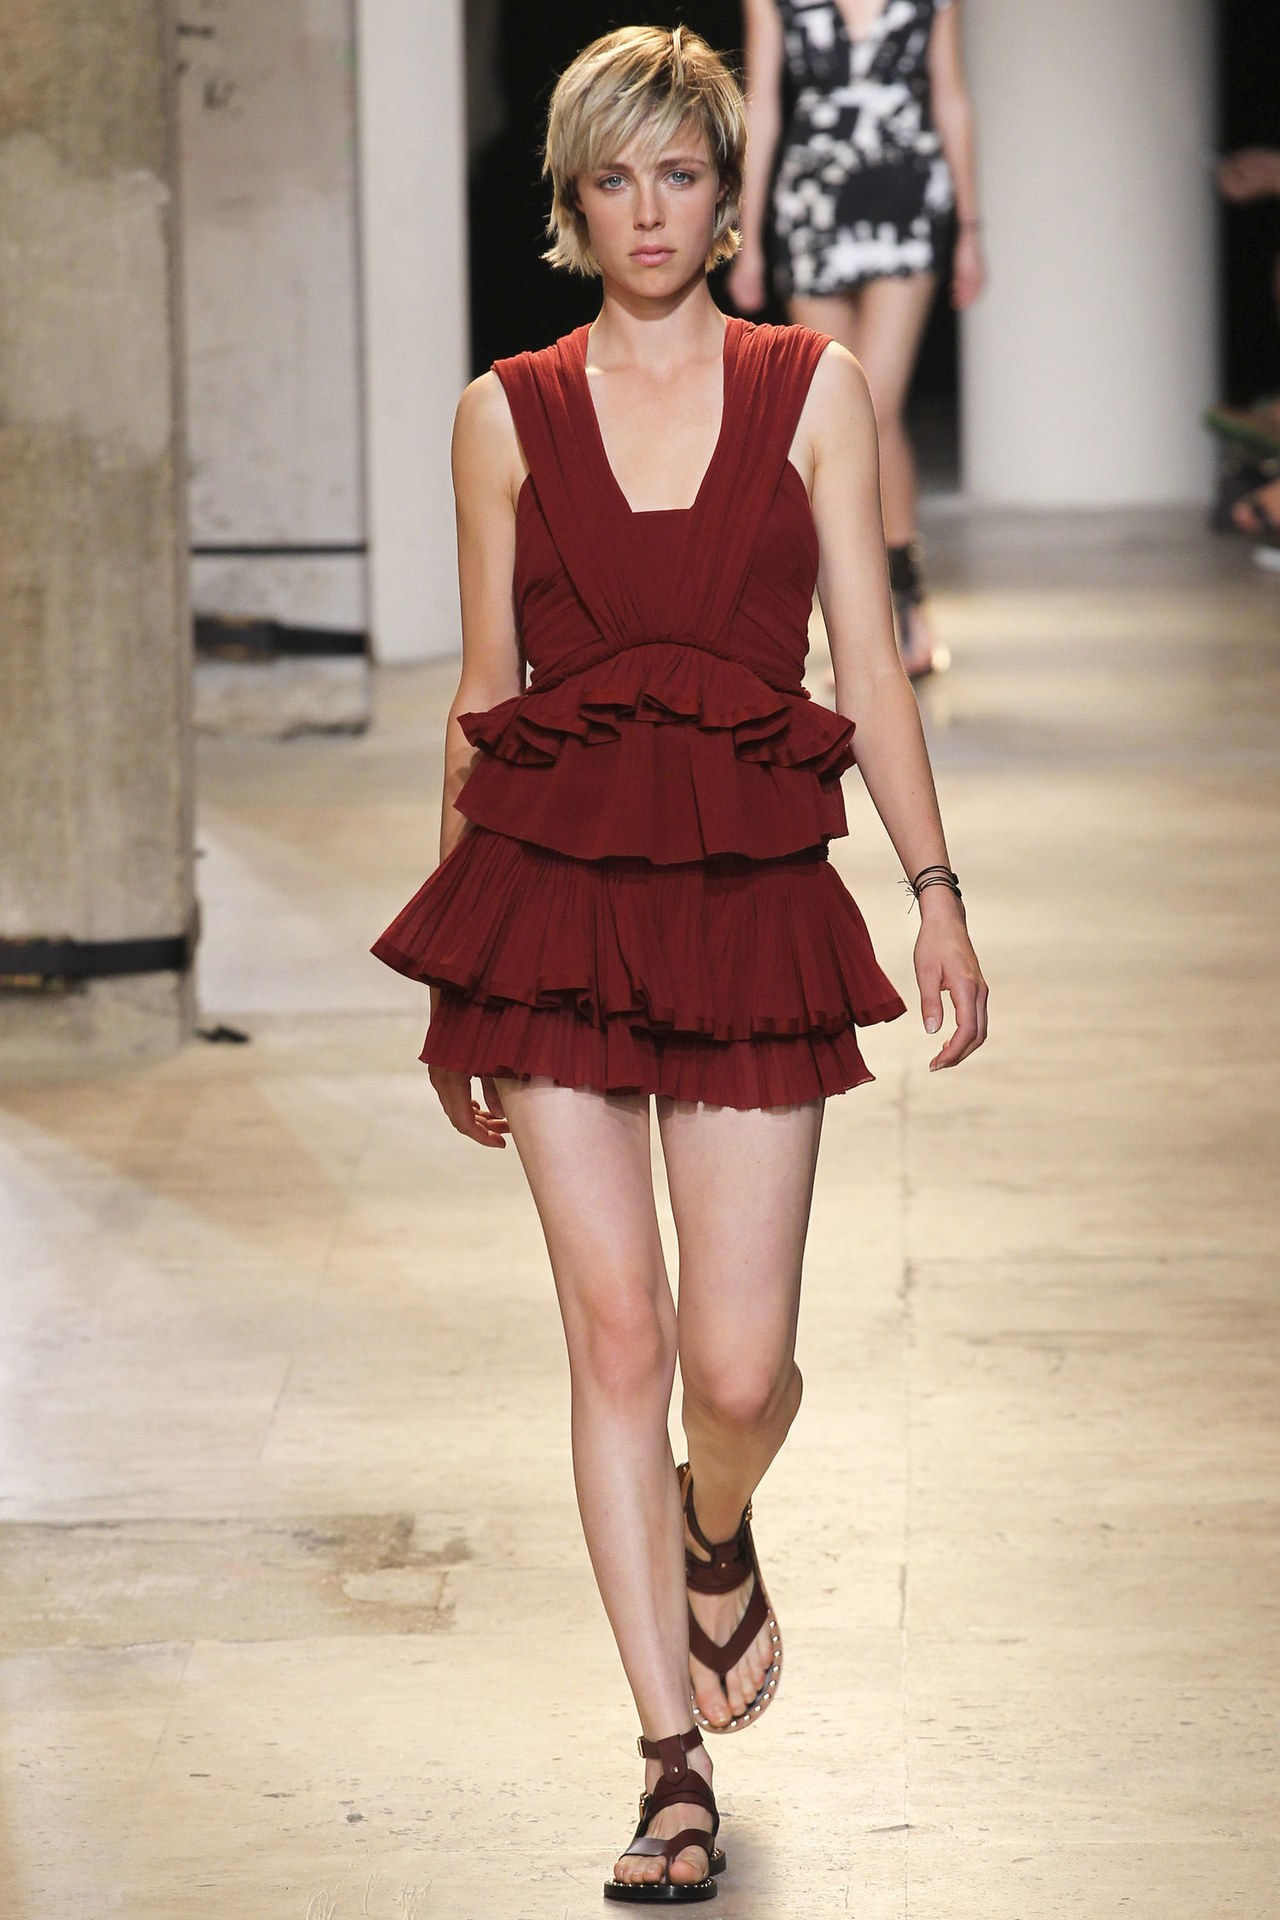 इसाबेल marant babydoll dress edie campbell spring 2015